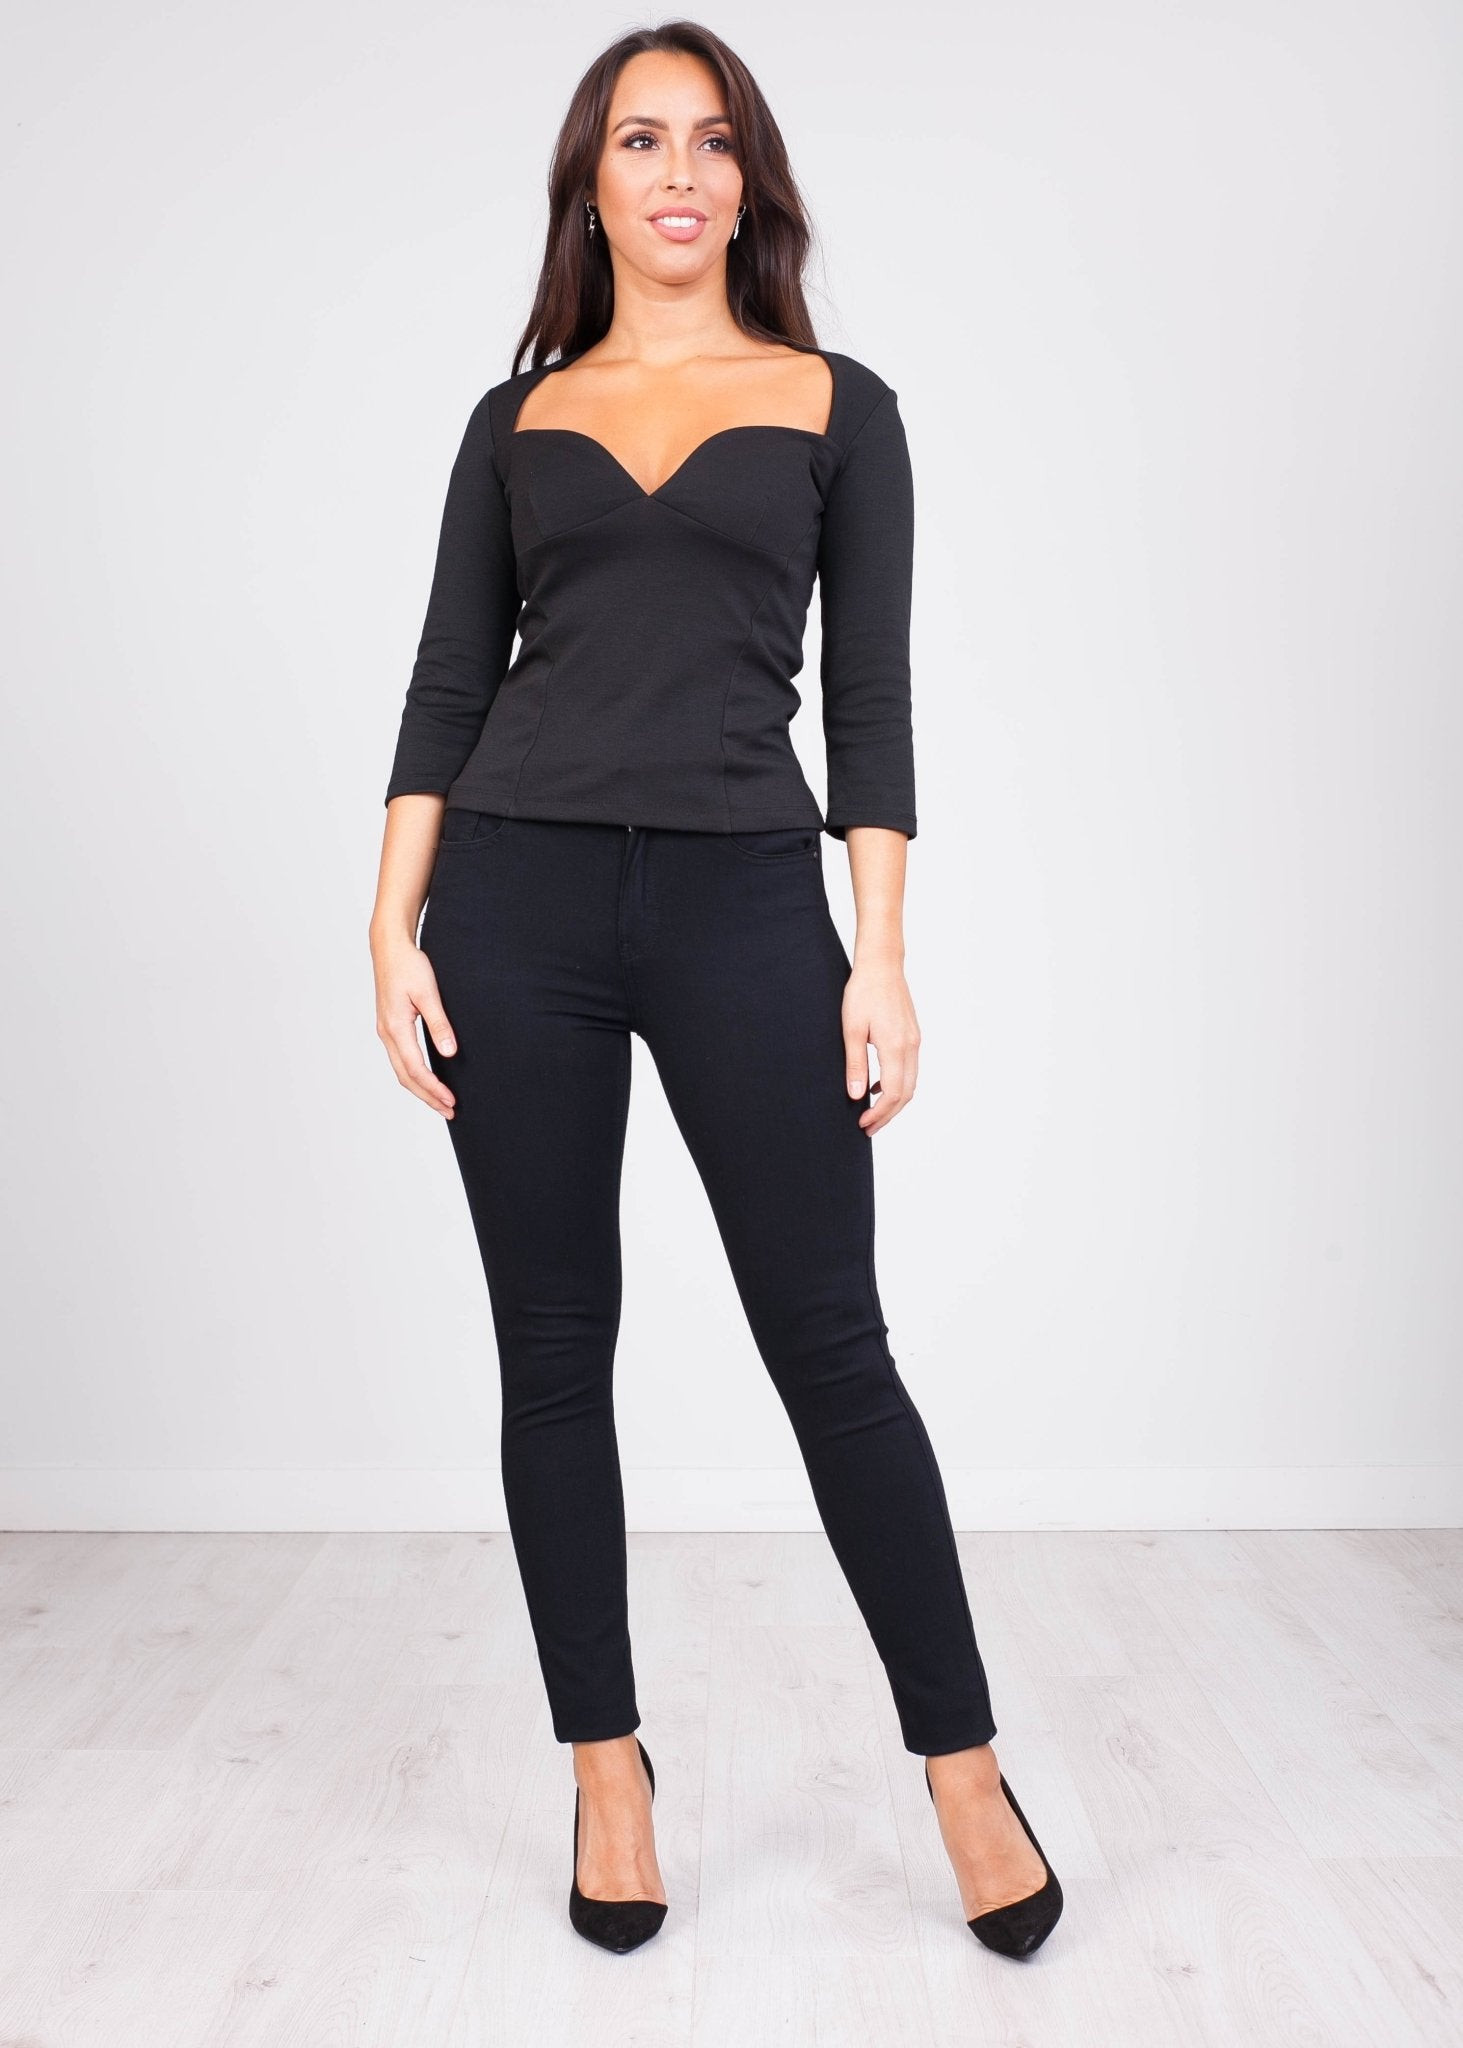 FiFi Black Top - The Walk in Wardrobe